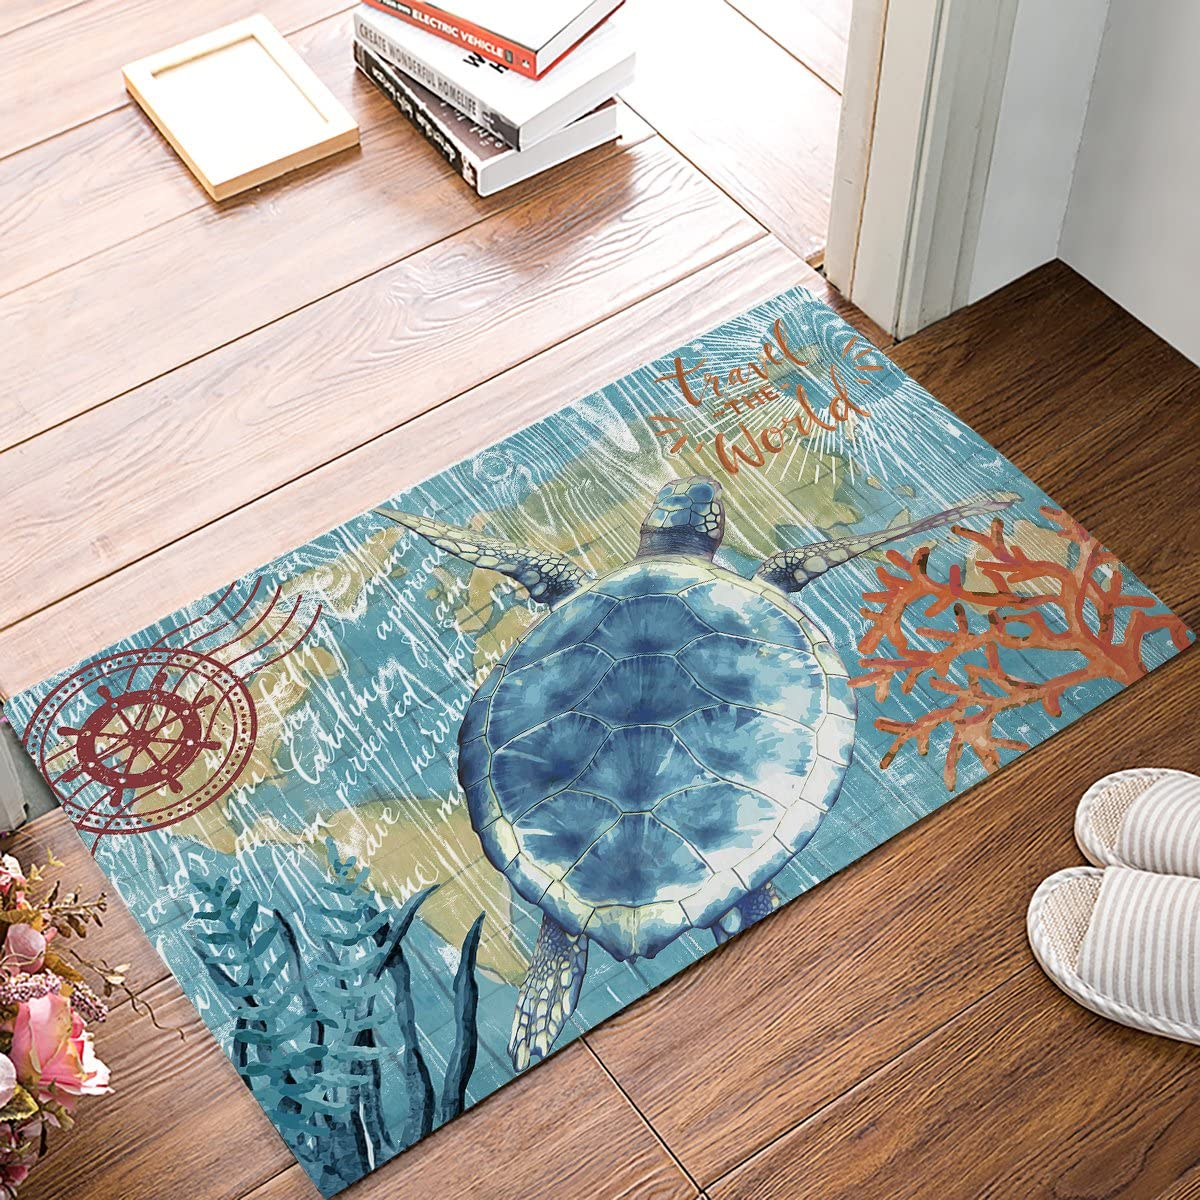 Decor Love Doormats for Front Entrance Outside Patio Rug 20 x 31.5 Turtle Travel The World Watercolor Map Indoor Outdoor Bathroom Kitchen Bedroom Entryway Floor, Non-Slip Rubber